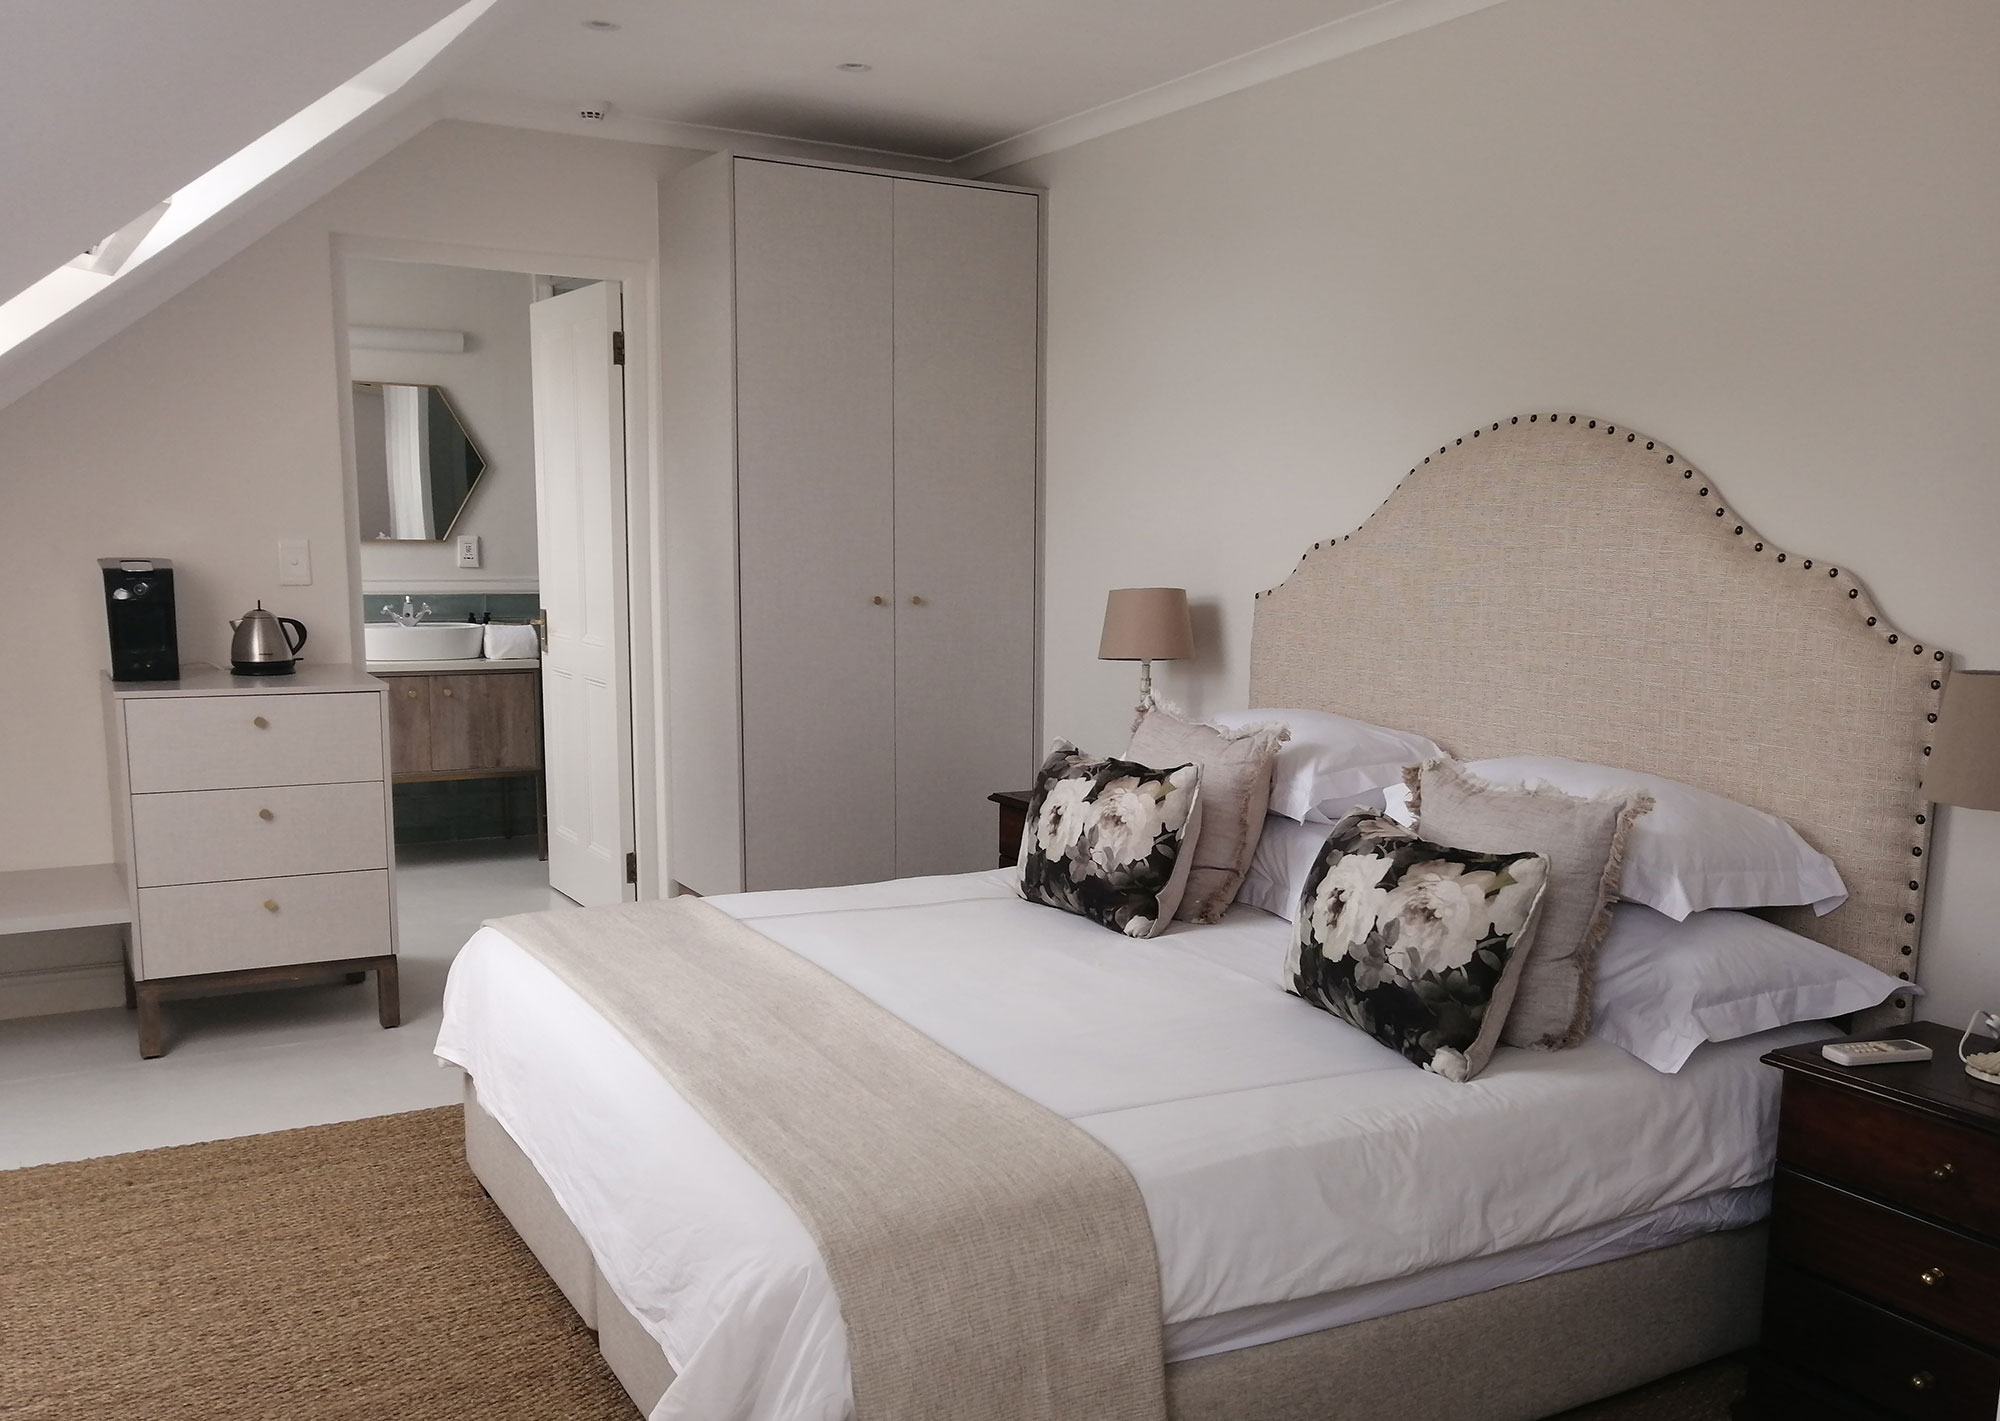 Bedroom at The Chapter House Boutique Hotel